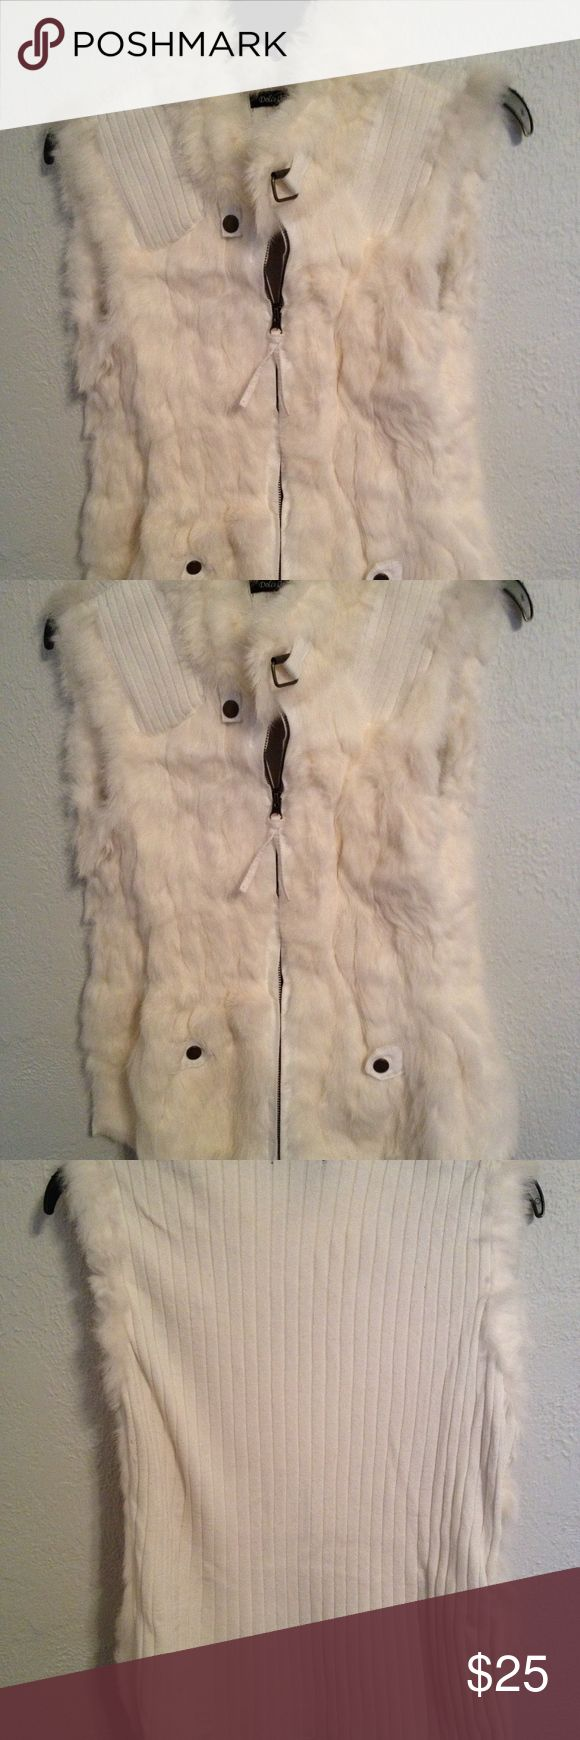 Rabbit Fur Vest w Knit Back Luxurious Rabbit Fur Vest - warm and fashionable with deep pockets and a knit back. Buttons and closures add fine details. Worn once, excellent condition, elegant and cozy with or without jackets. Tag says XL, but fits like a M-L. Dolce Cabo Jackets & Coats Vests